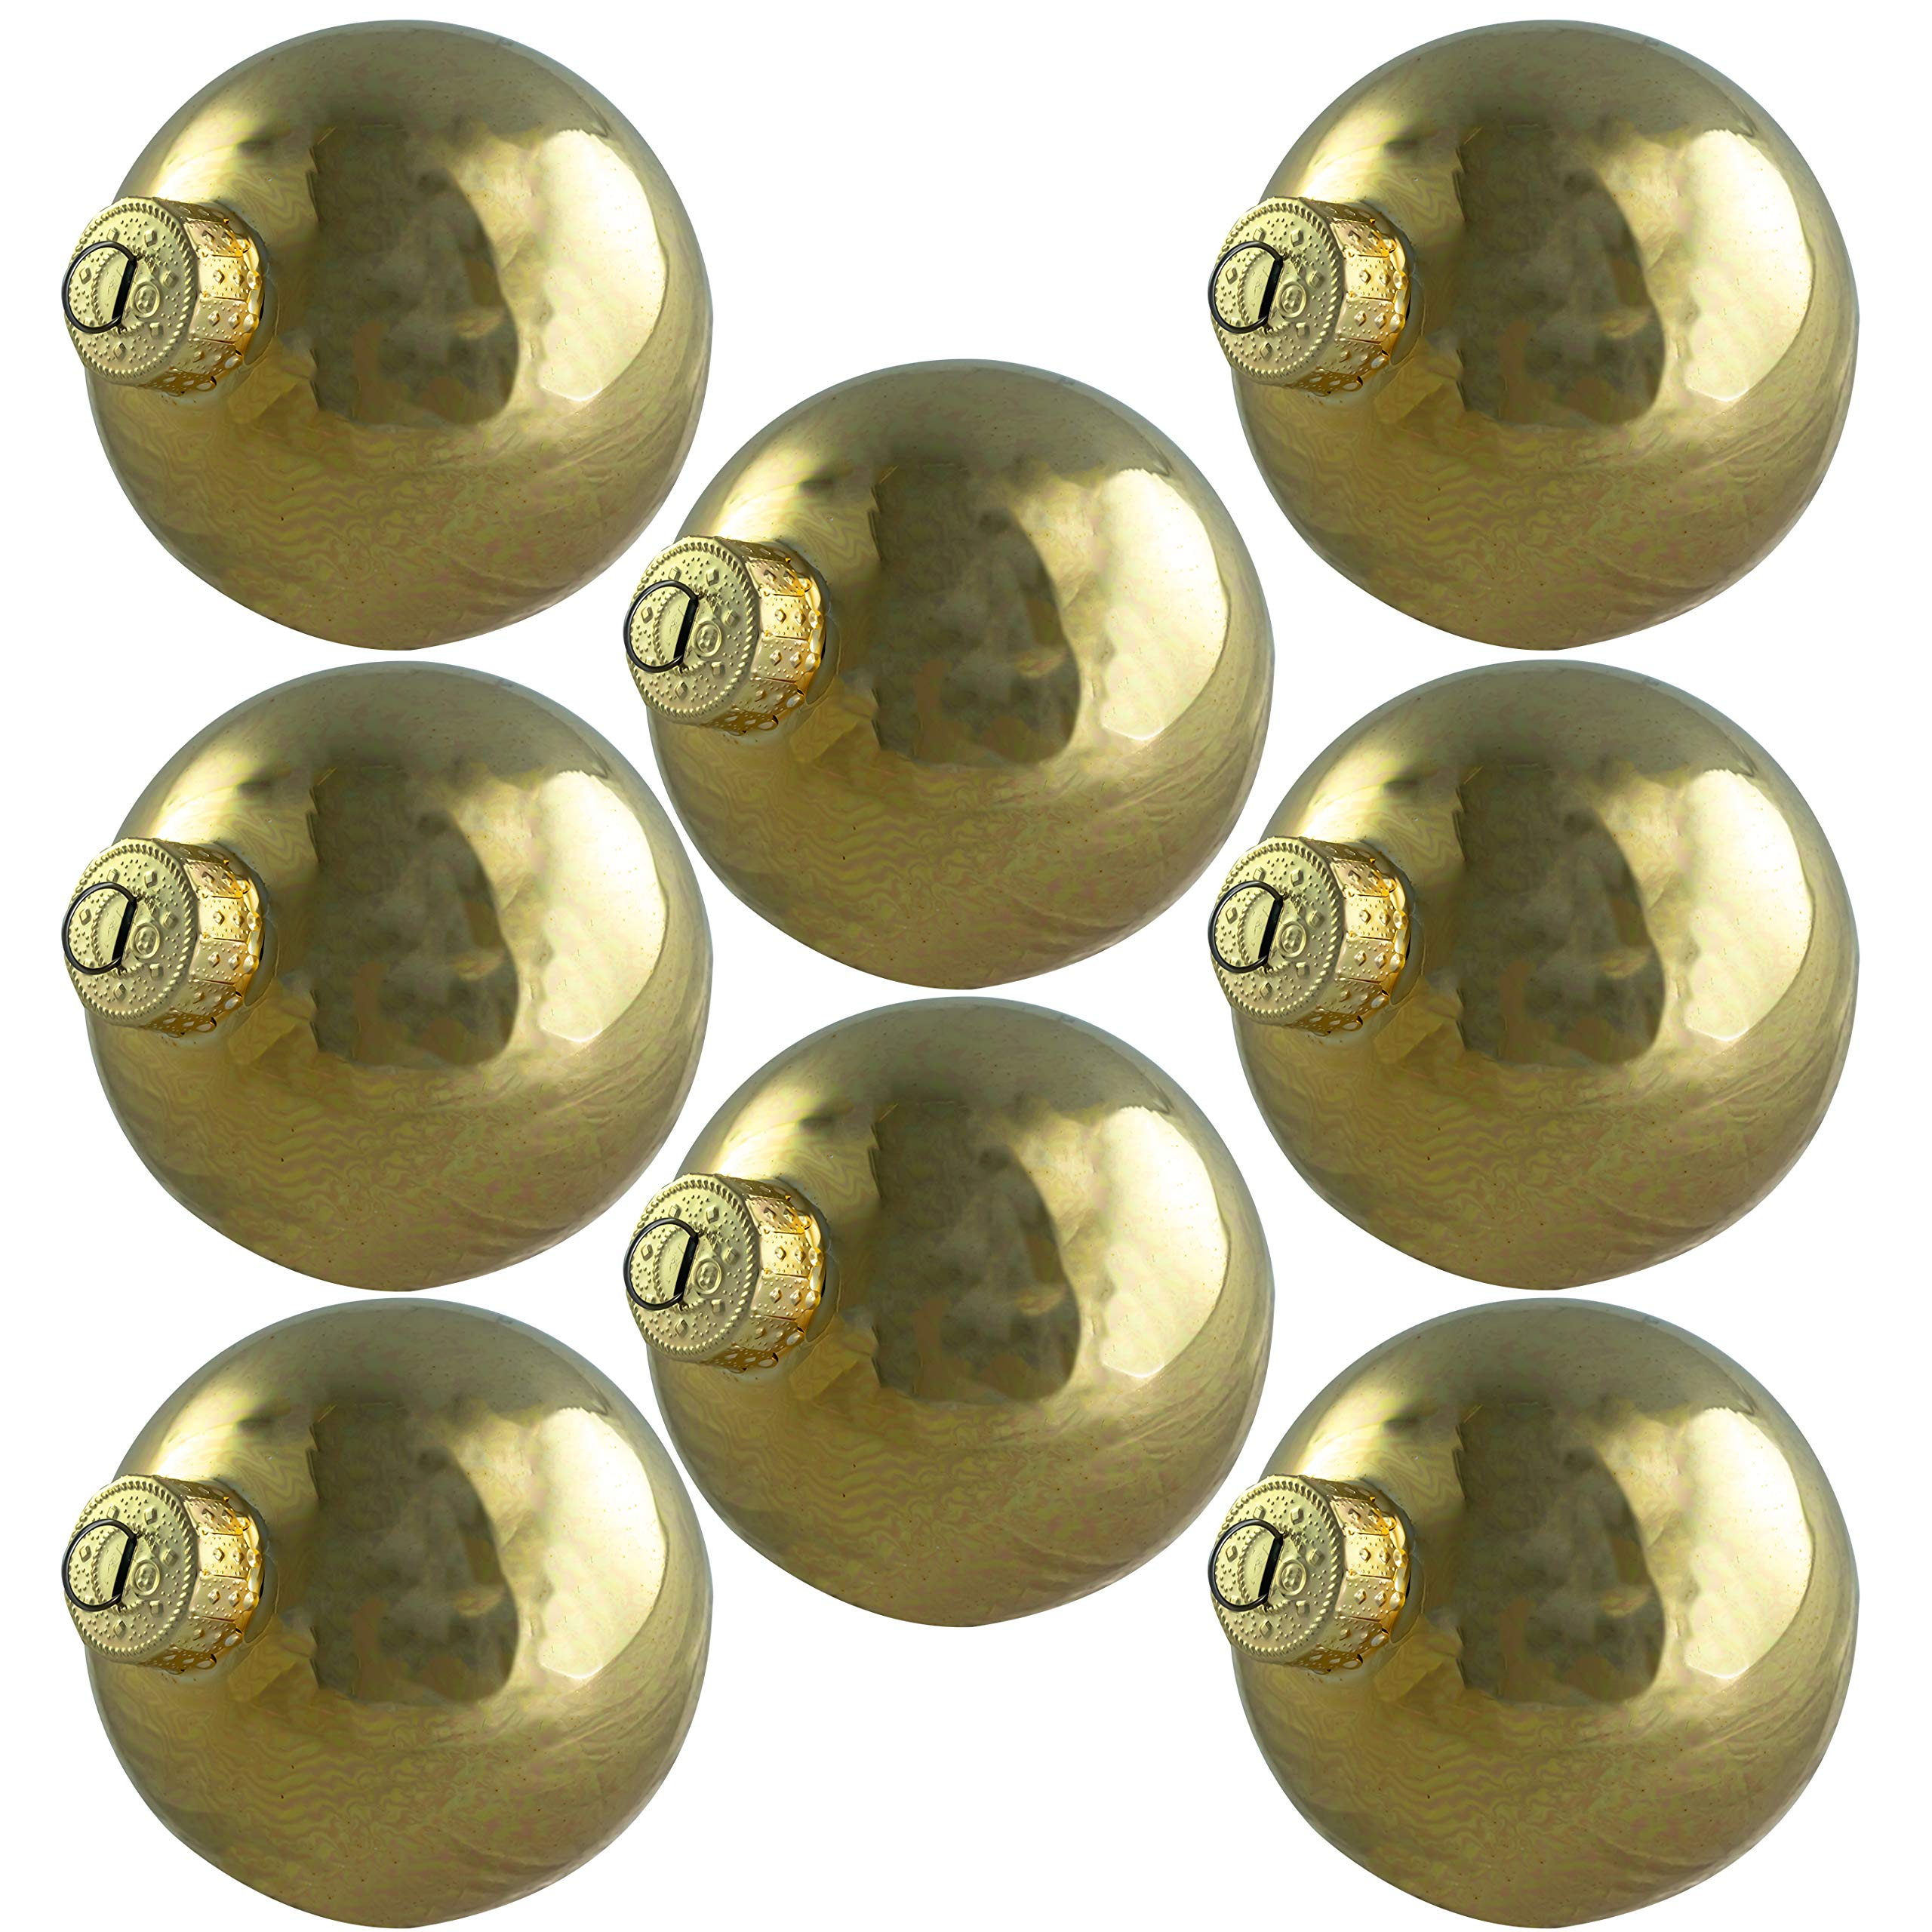 2.6in Glass Xmas Ball Ornaments with Wire Hook Hangers 16 Pack. Small Traditional Shiny Gold Seamless Bulbs. Great for DIY Gifts, Crafts and Tree Decorating. Flame Resistant Christmas Decoration